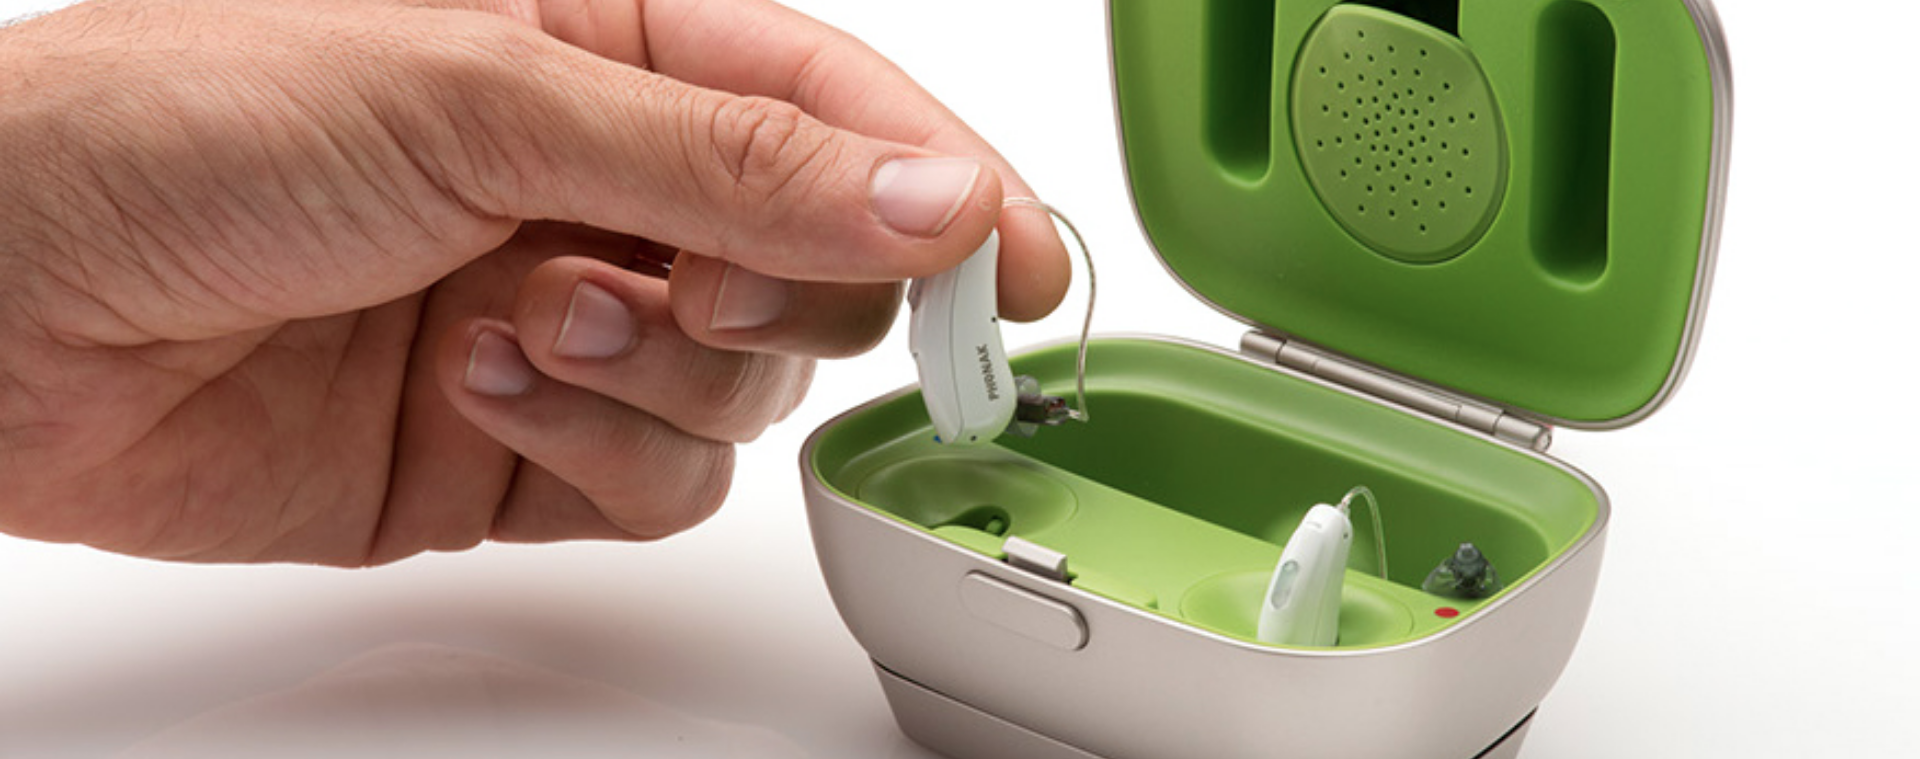 The benefits of a rechargeable hearing aid